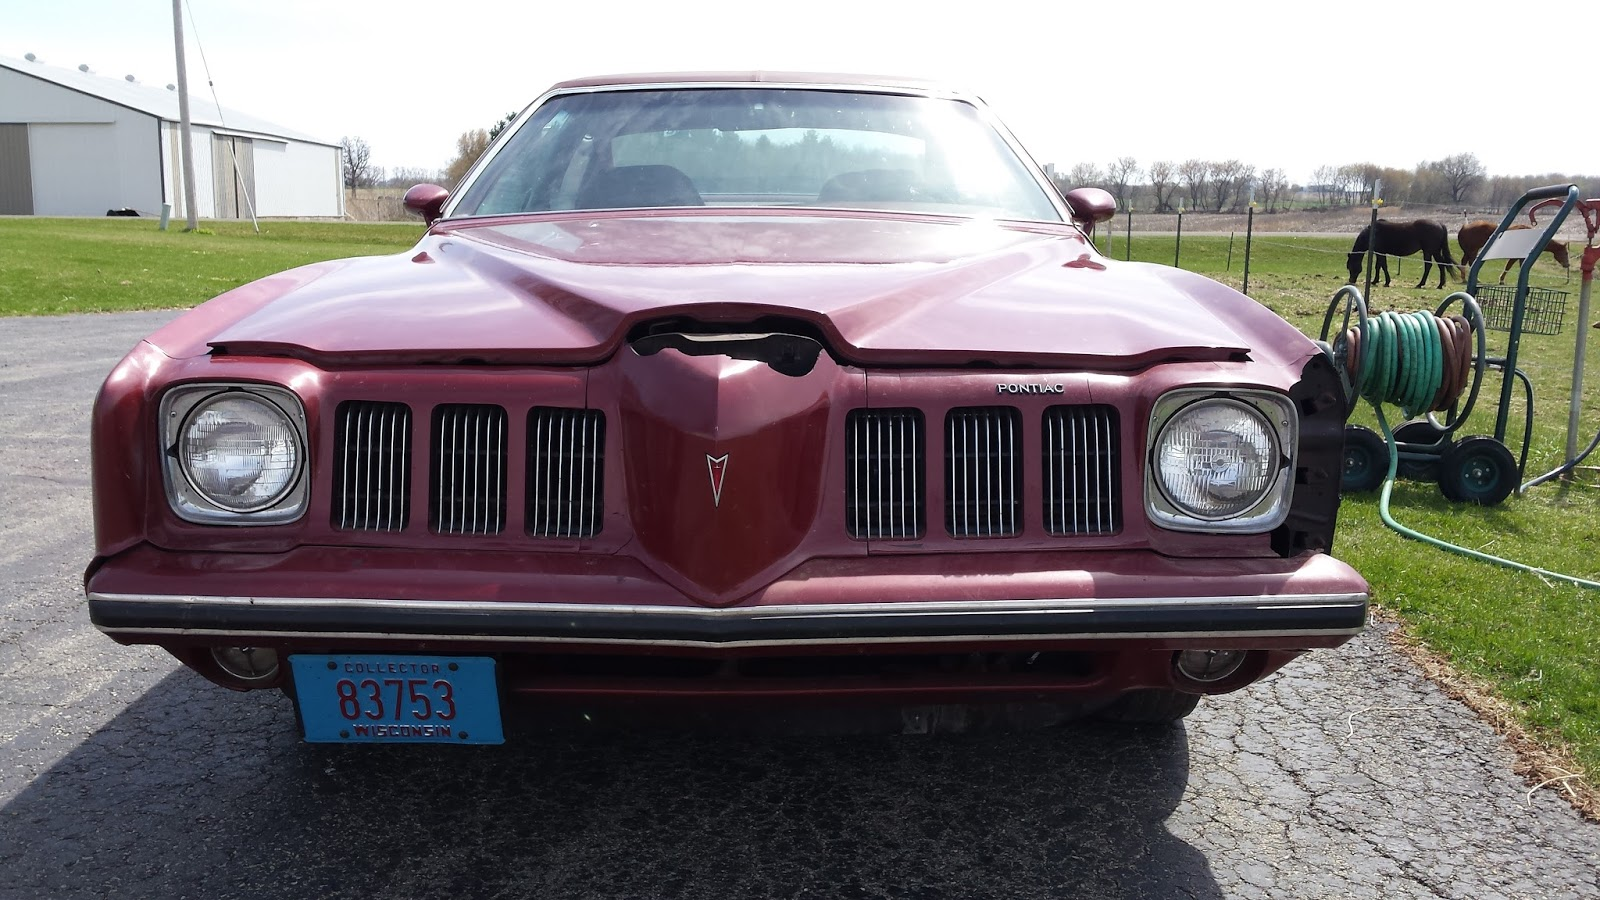 Driven Restorations: 1973 Pontiac 400 Built for HP and Fun!